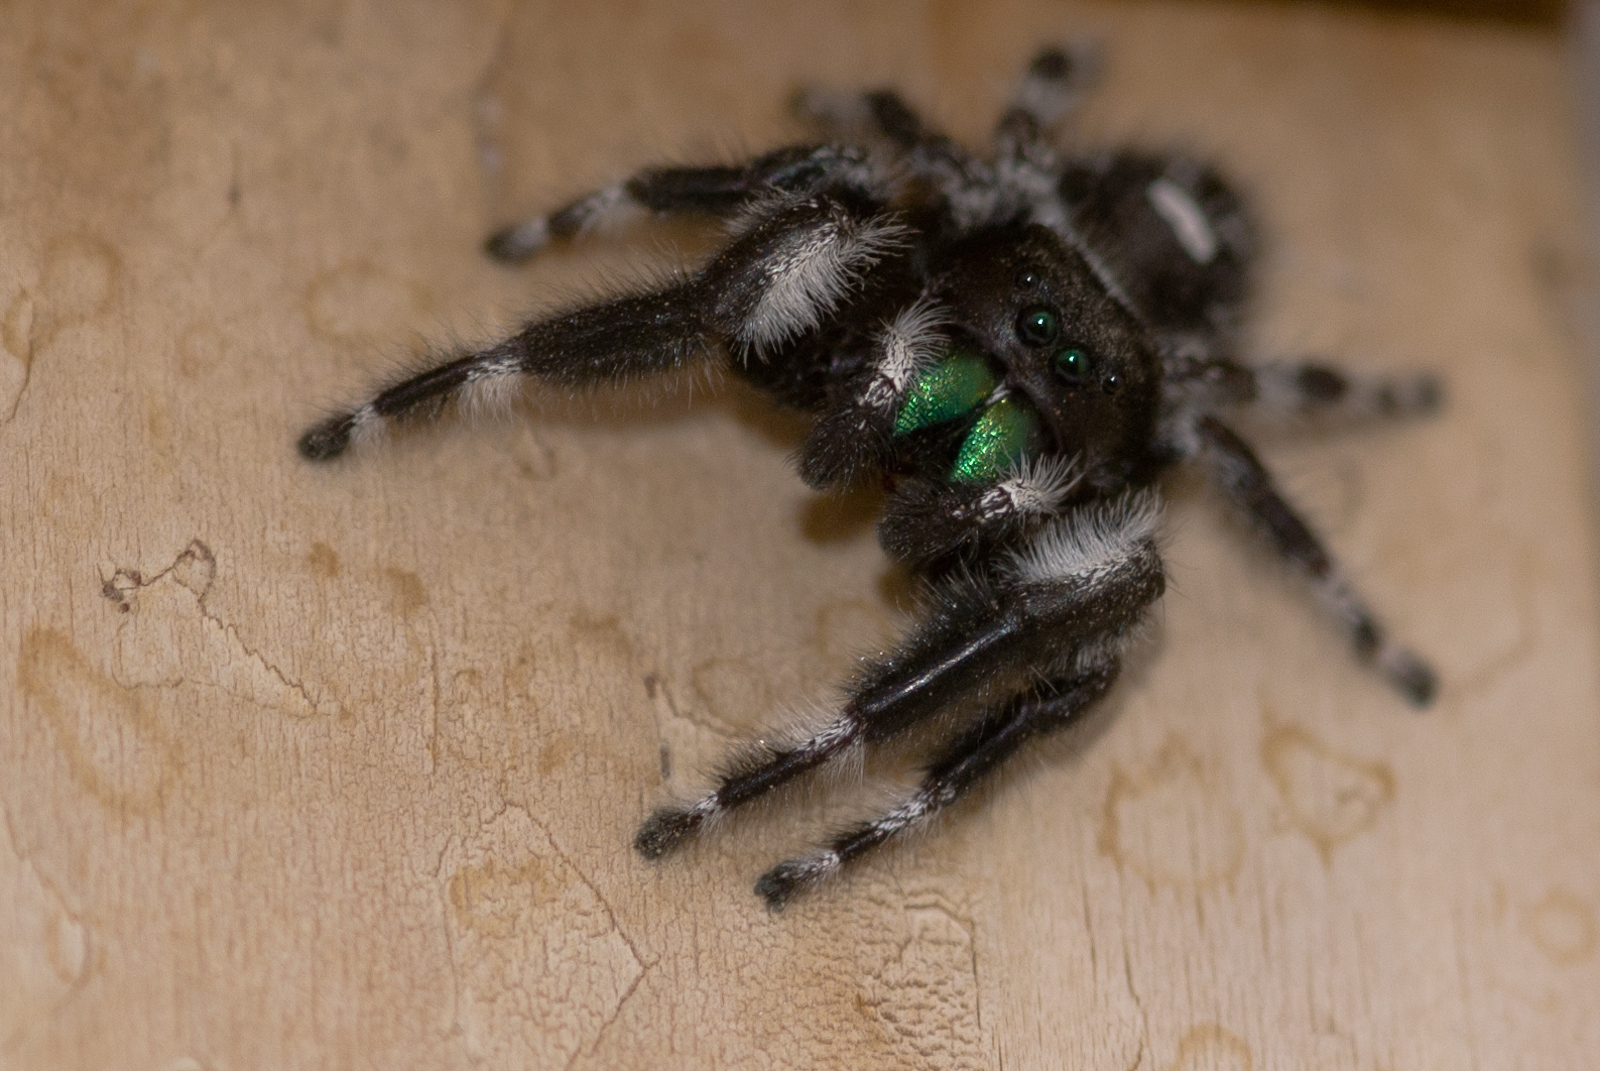 White and Black Jumping Spider With Green Fangs